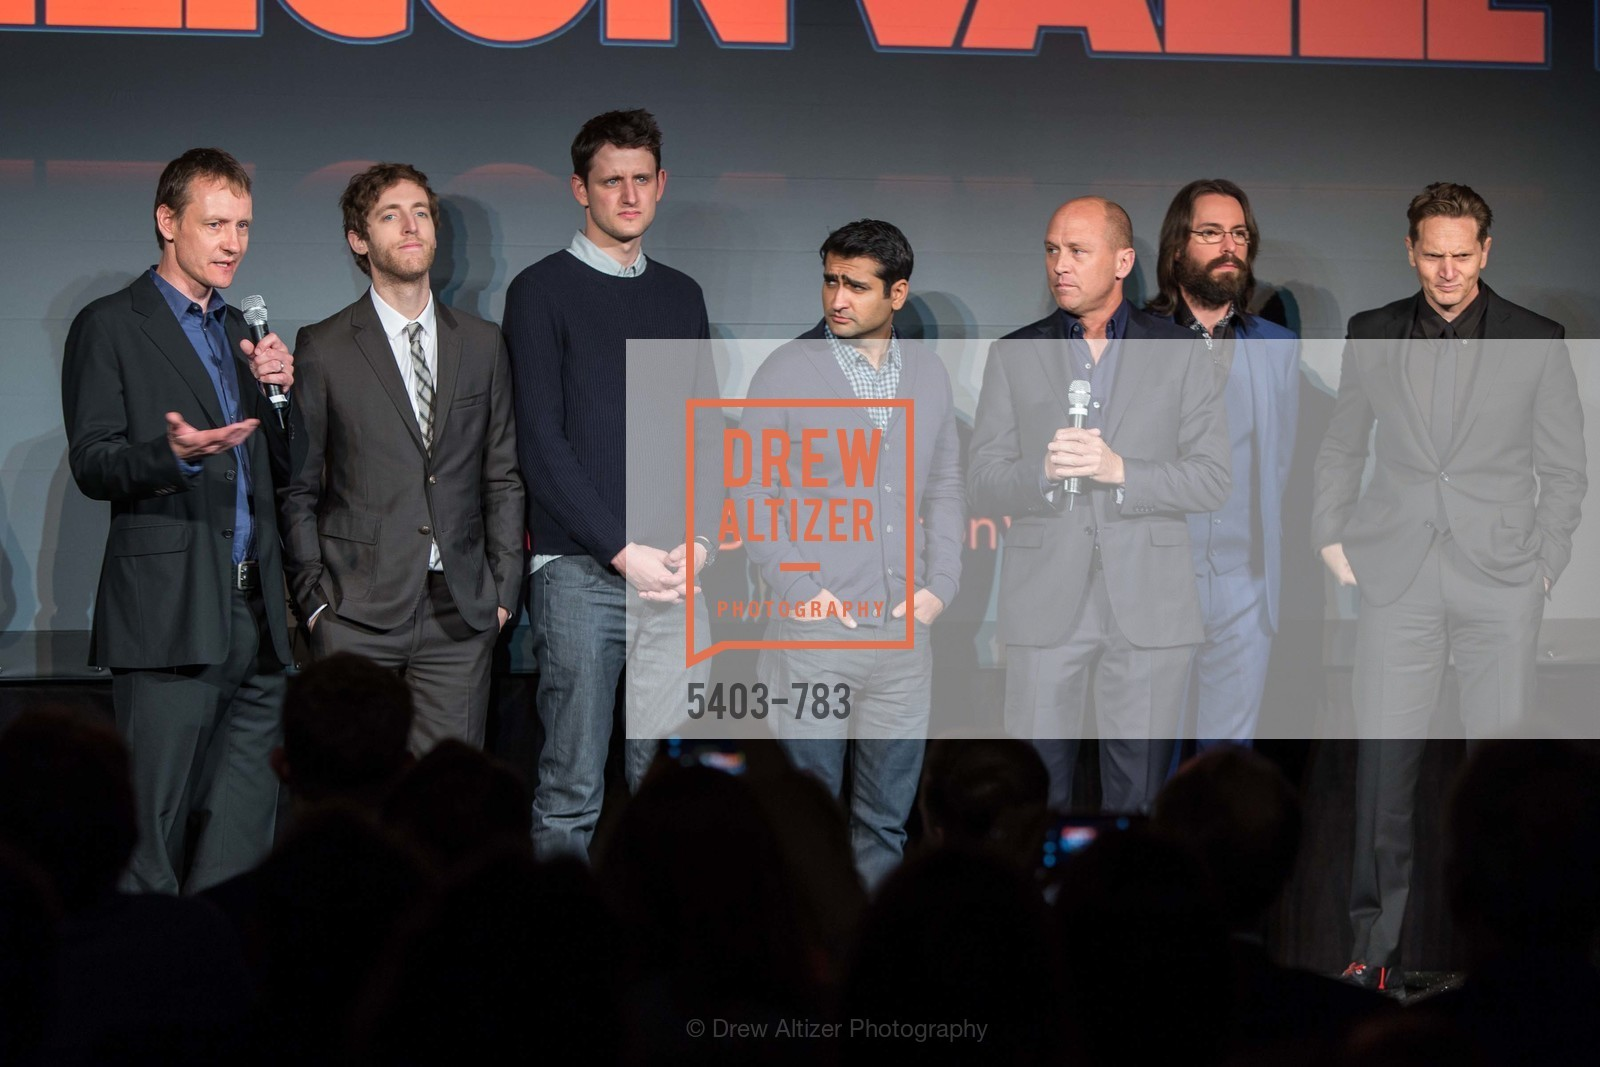 Alec Berg, Thomas Middleditch, Zach Woods, Kumial Nanjiani, Mike Judge, Martin Starr, Matt Ross, HBO'S SILICON VALLEY San Francisco Screening, US, April 9th, 2015,Drew Altizer, Drew Altizer Photography, full-service agency, private events, San Francisco photographer, photographer california